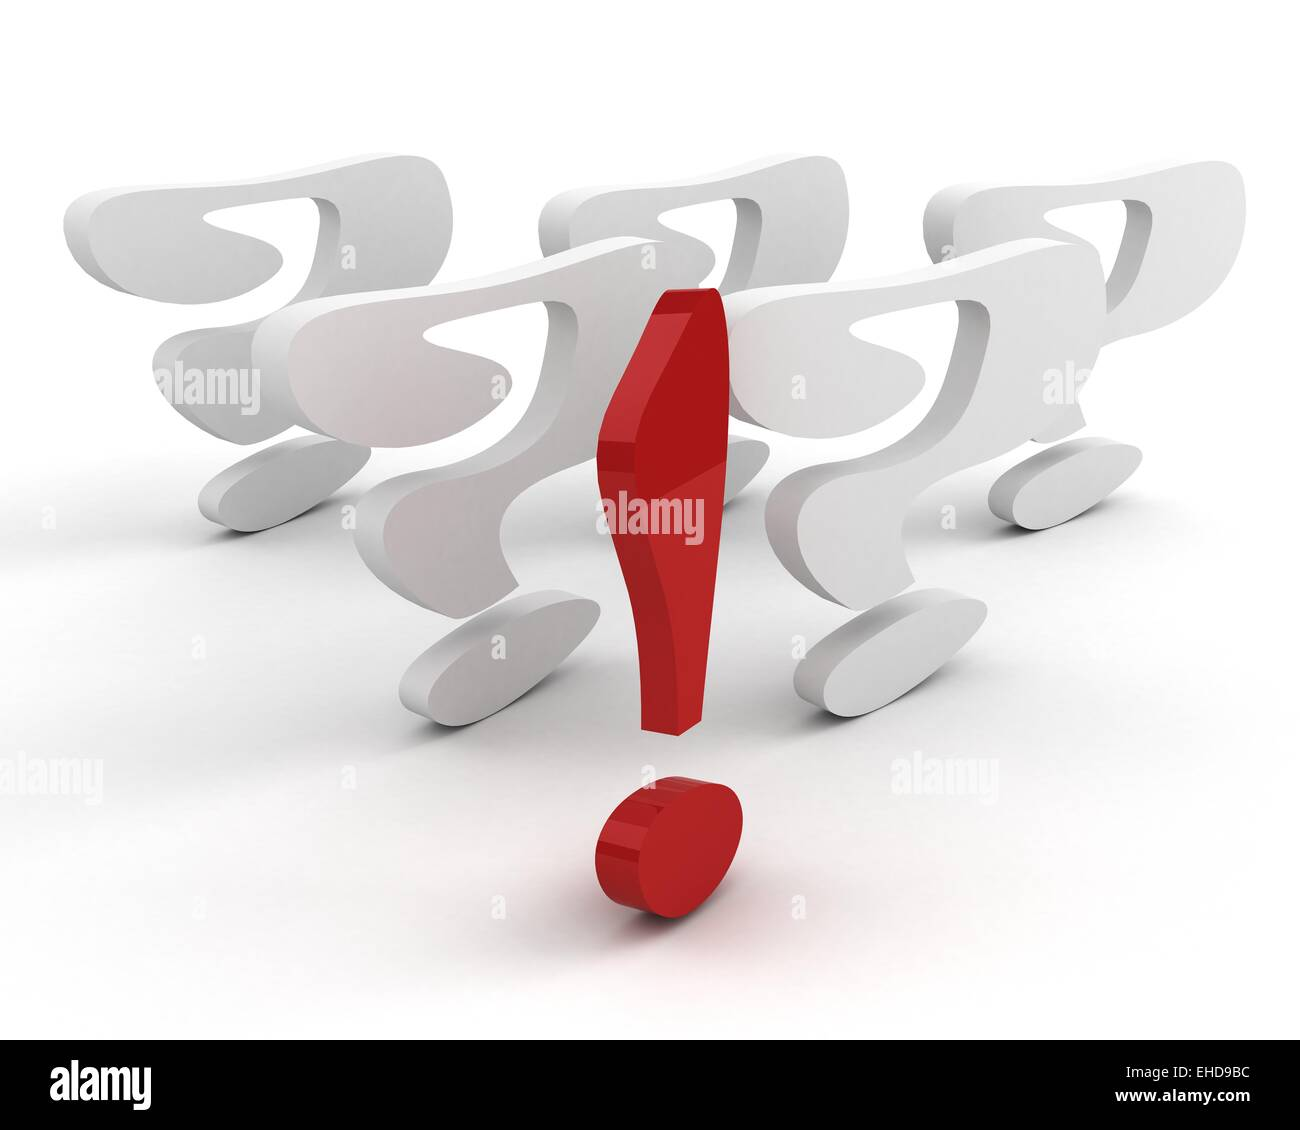 exclamation mark. leadership concept - Stock Image